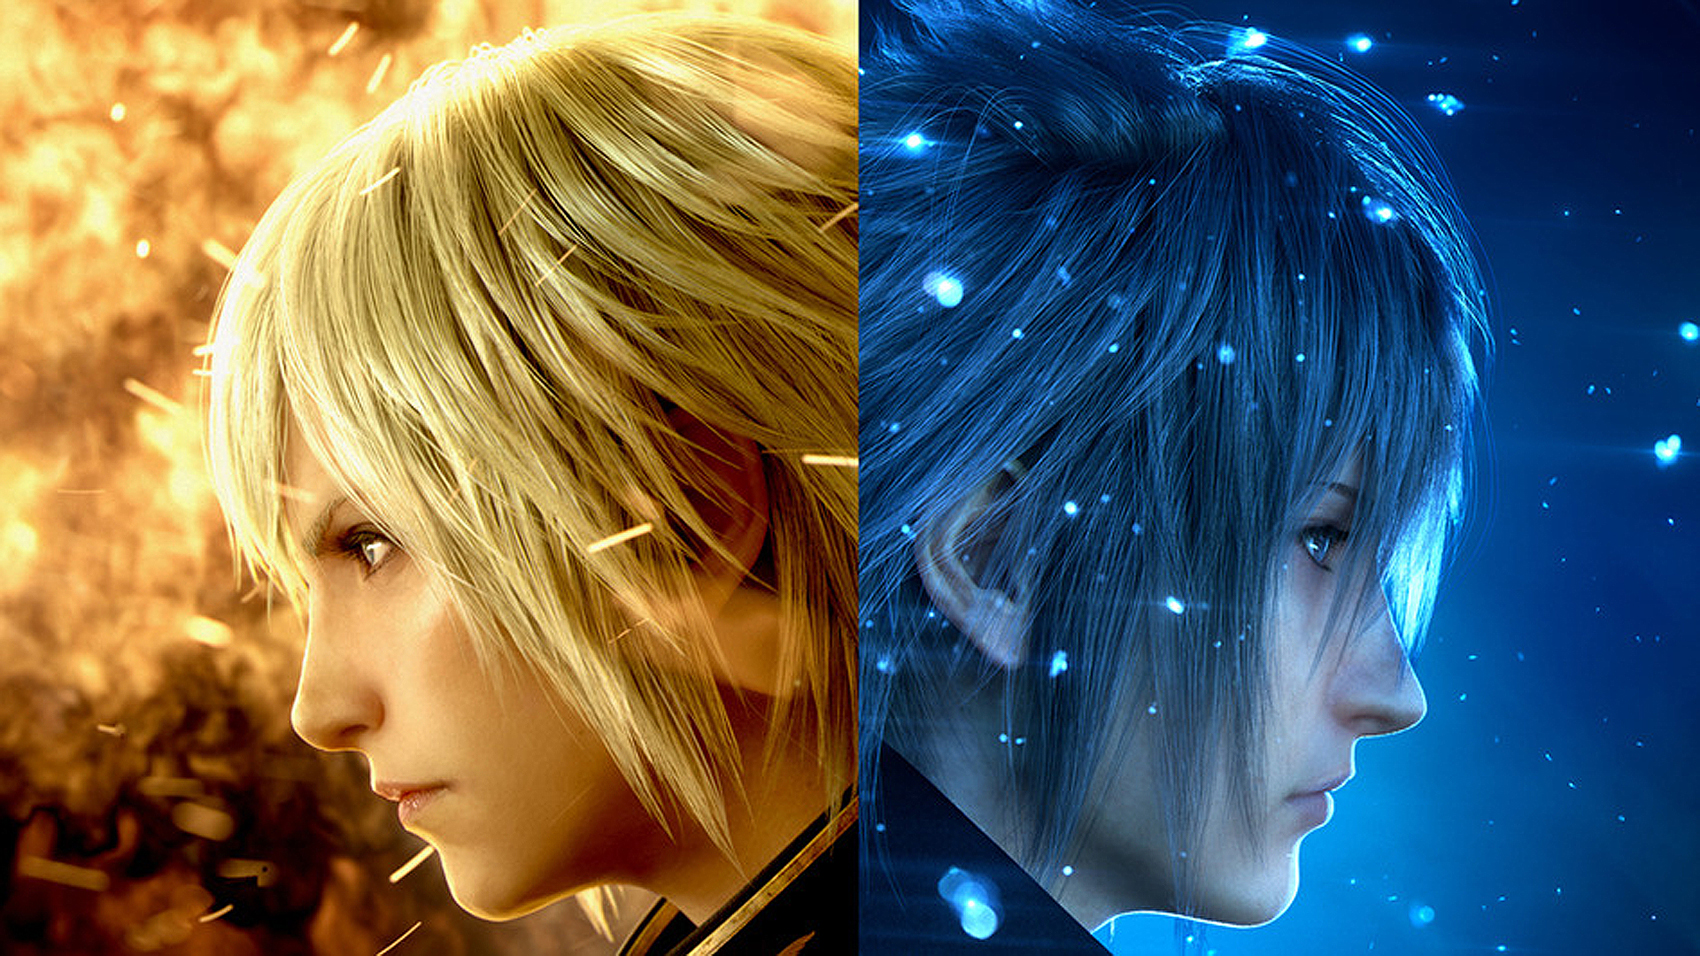 Final Fantasy Xv Final Fantasy Hd Wallpapers Desktop: Final Fantasy XV HD Wallpapers Free Download